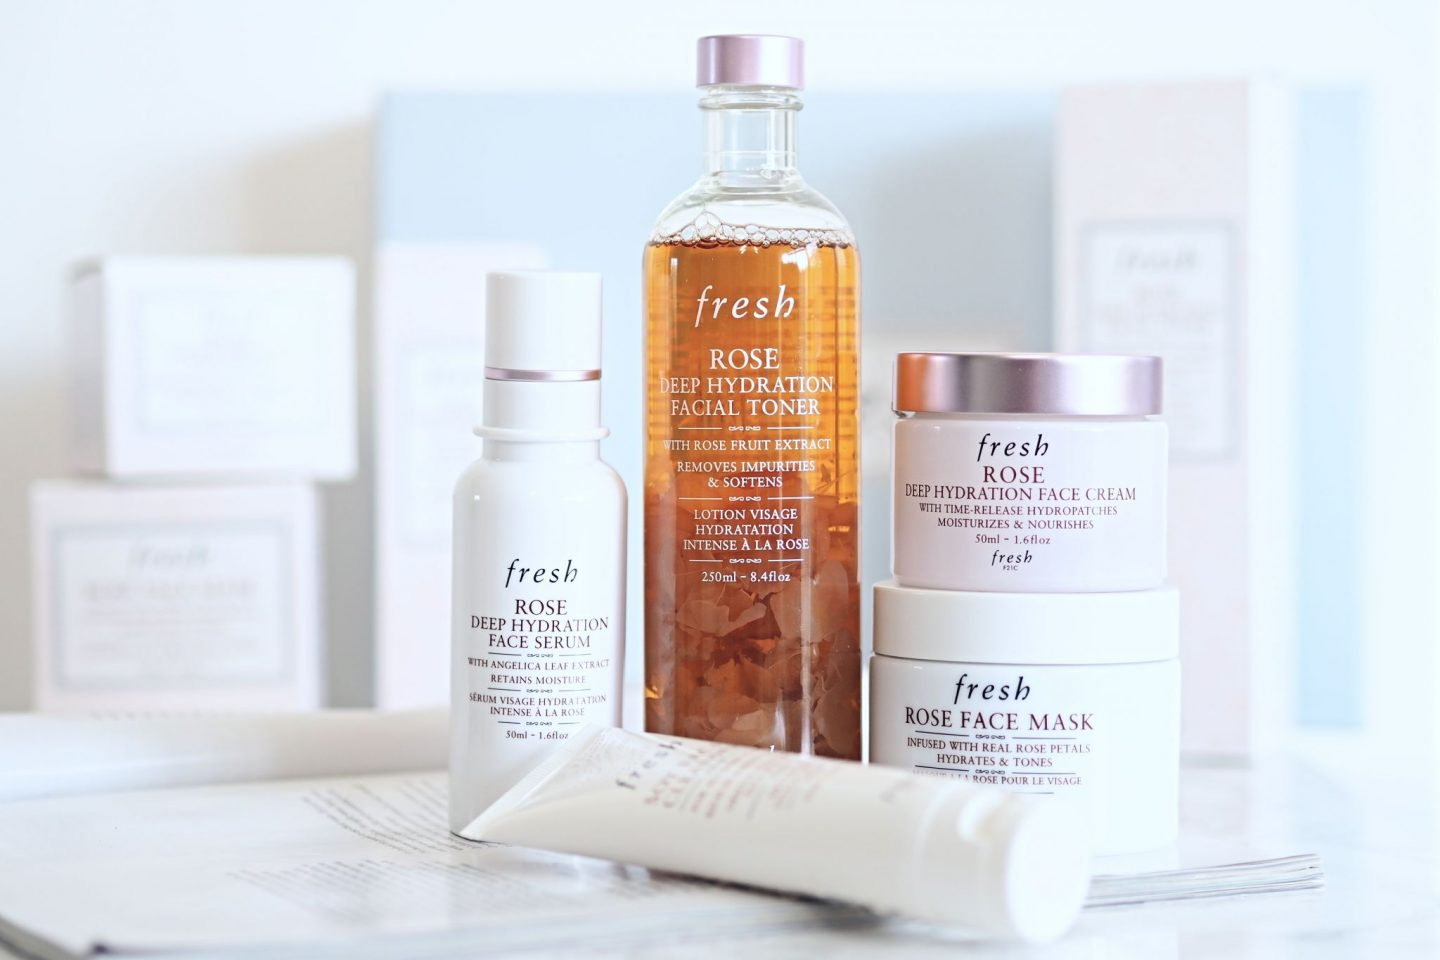 NEW IN SKINCARE: Fresh